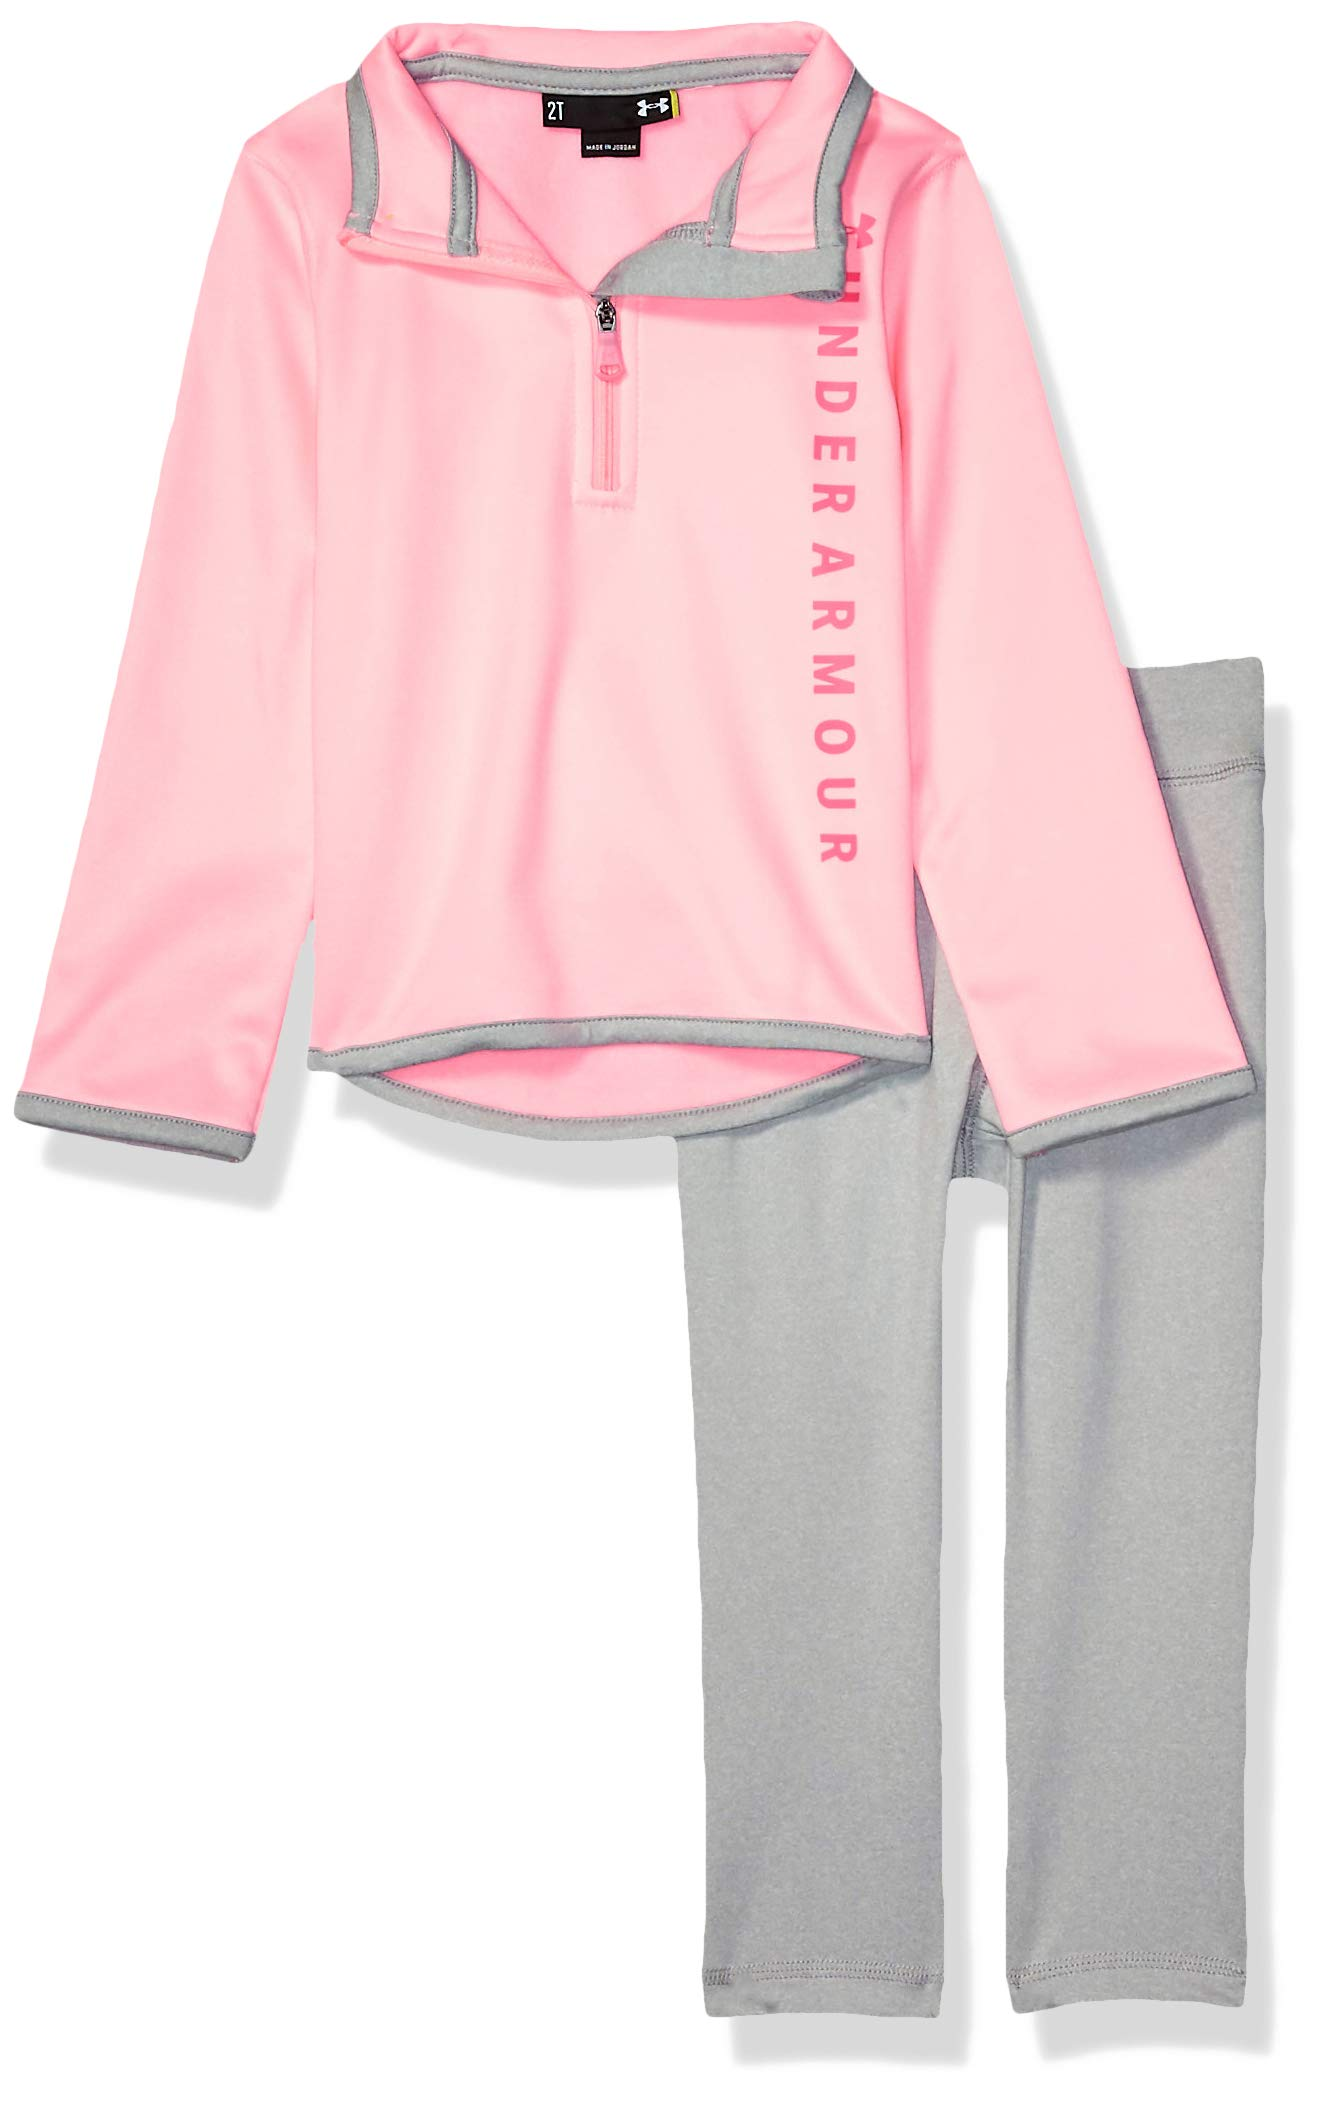 Under Armour Girls' Little Teamster Track Set, POP Pink f19, 5 by Under Armour